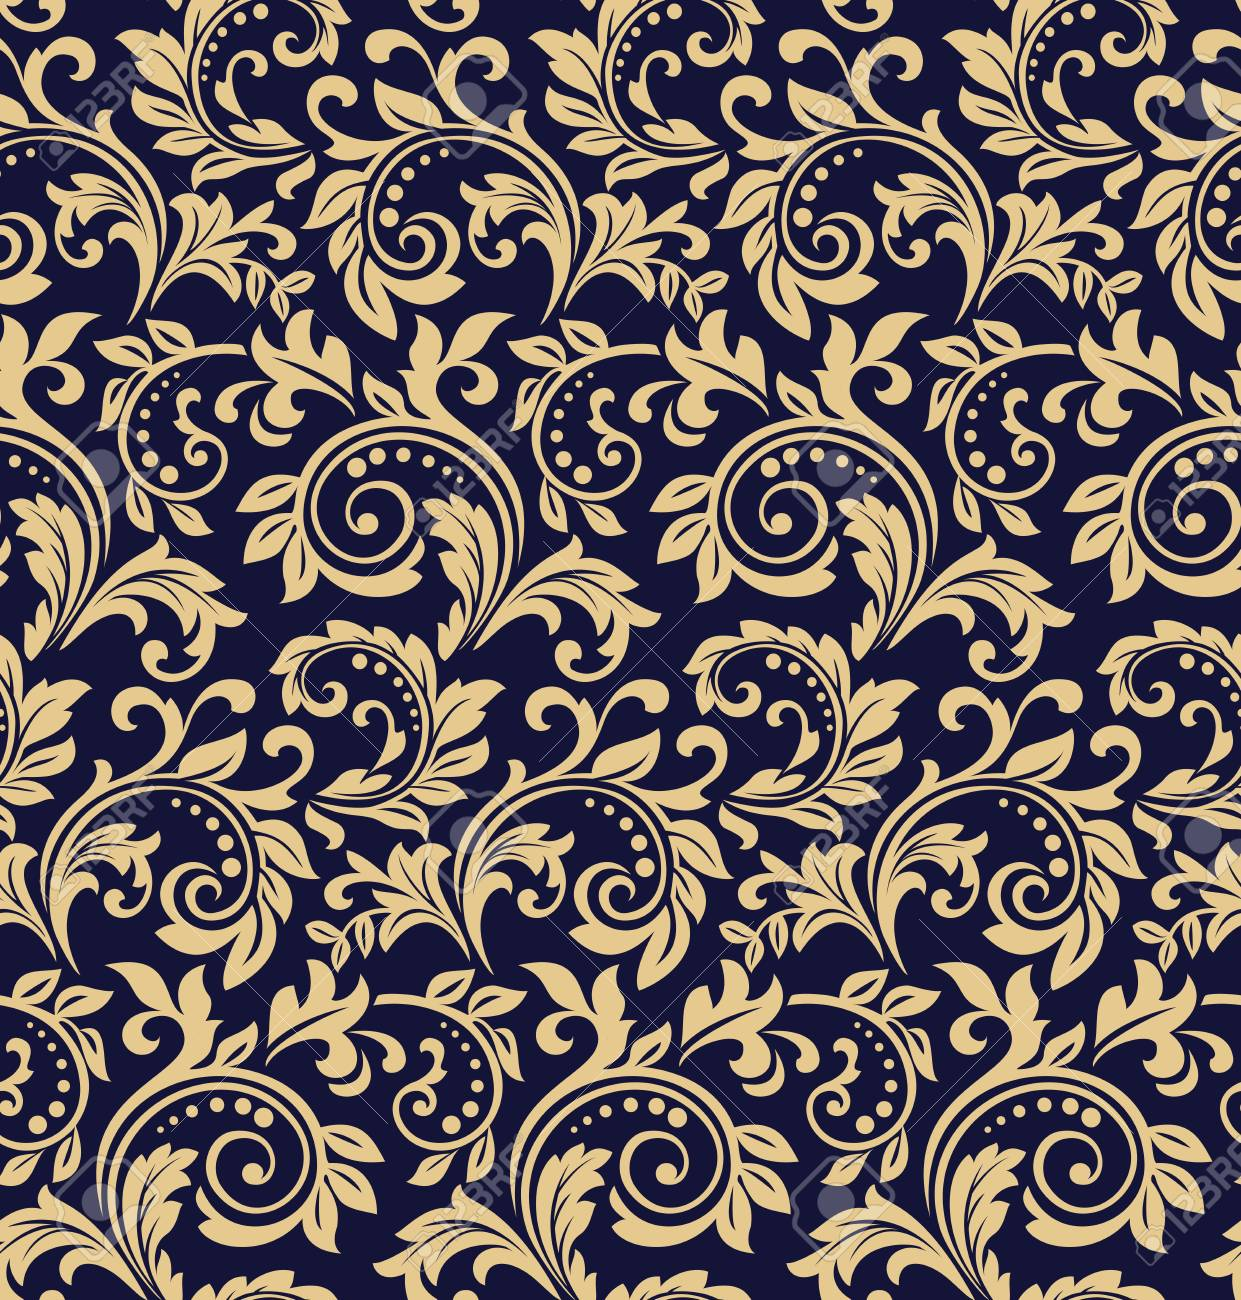 Wallpaper in the style of Baroque. Seamless vector background. Dark blue and gold floral ornament. Graphic pattern for fabric, wallpaper, packaging. Ornate Damask flower ornament - 103477617